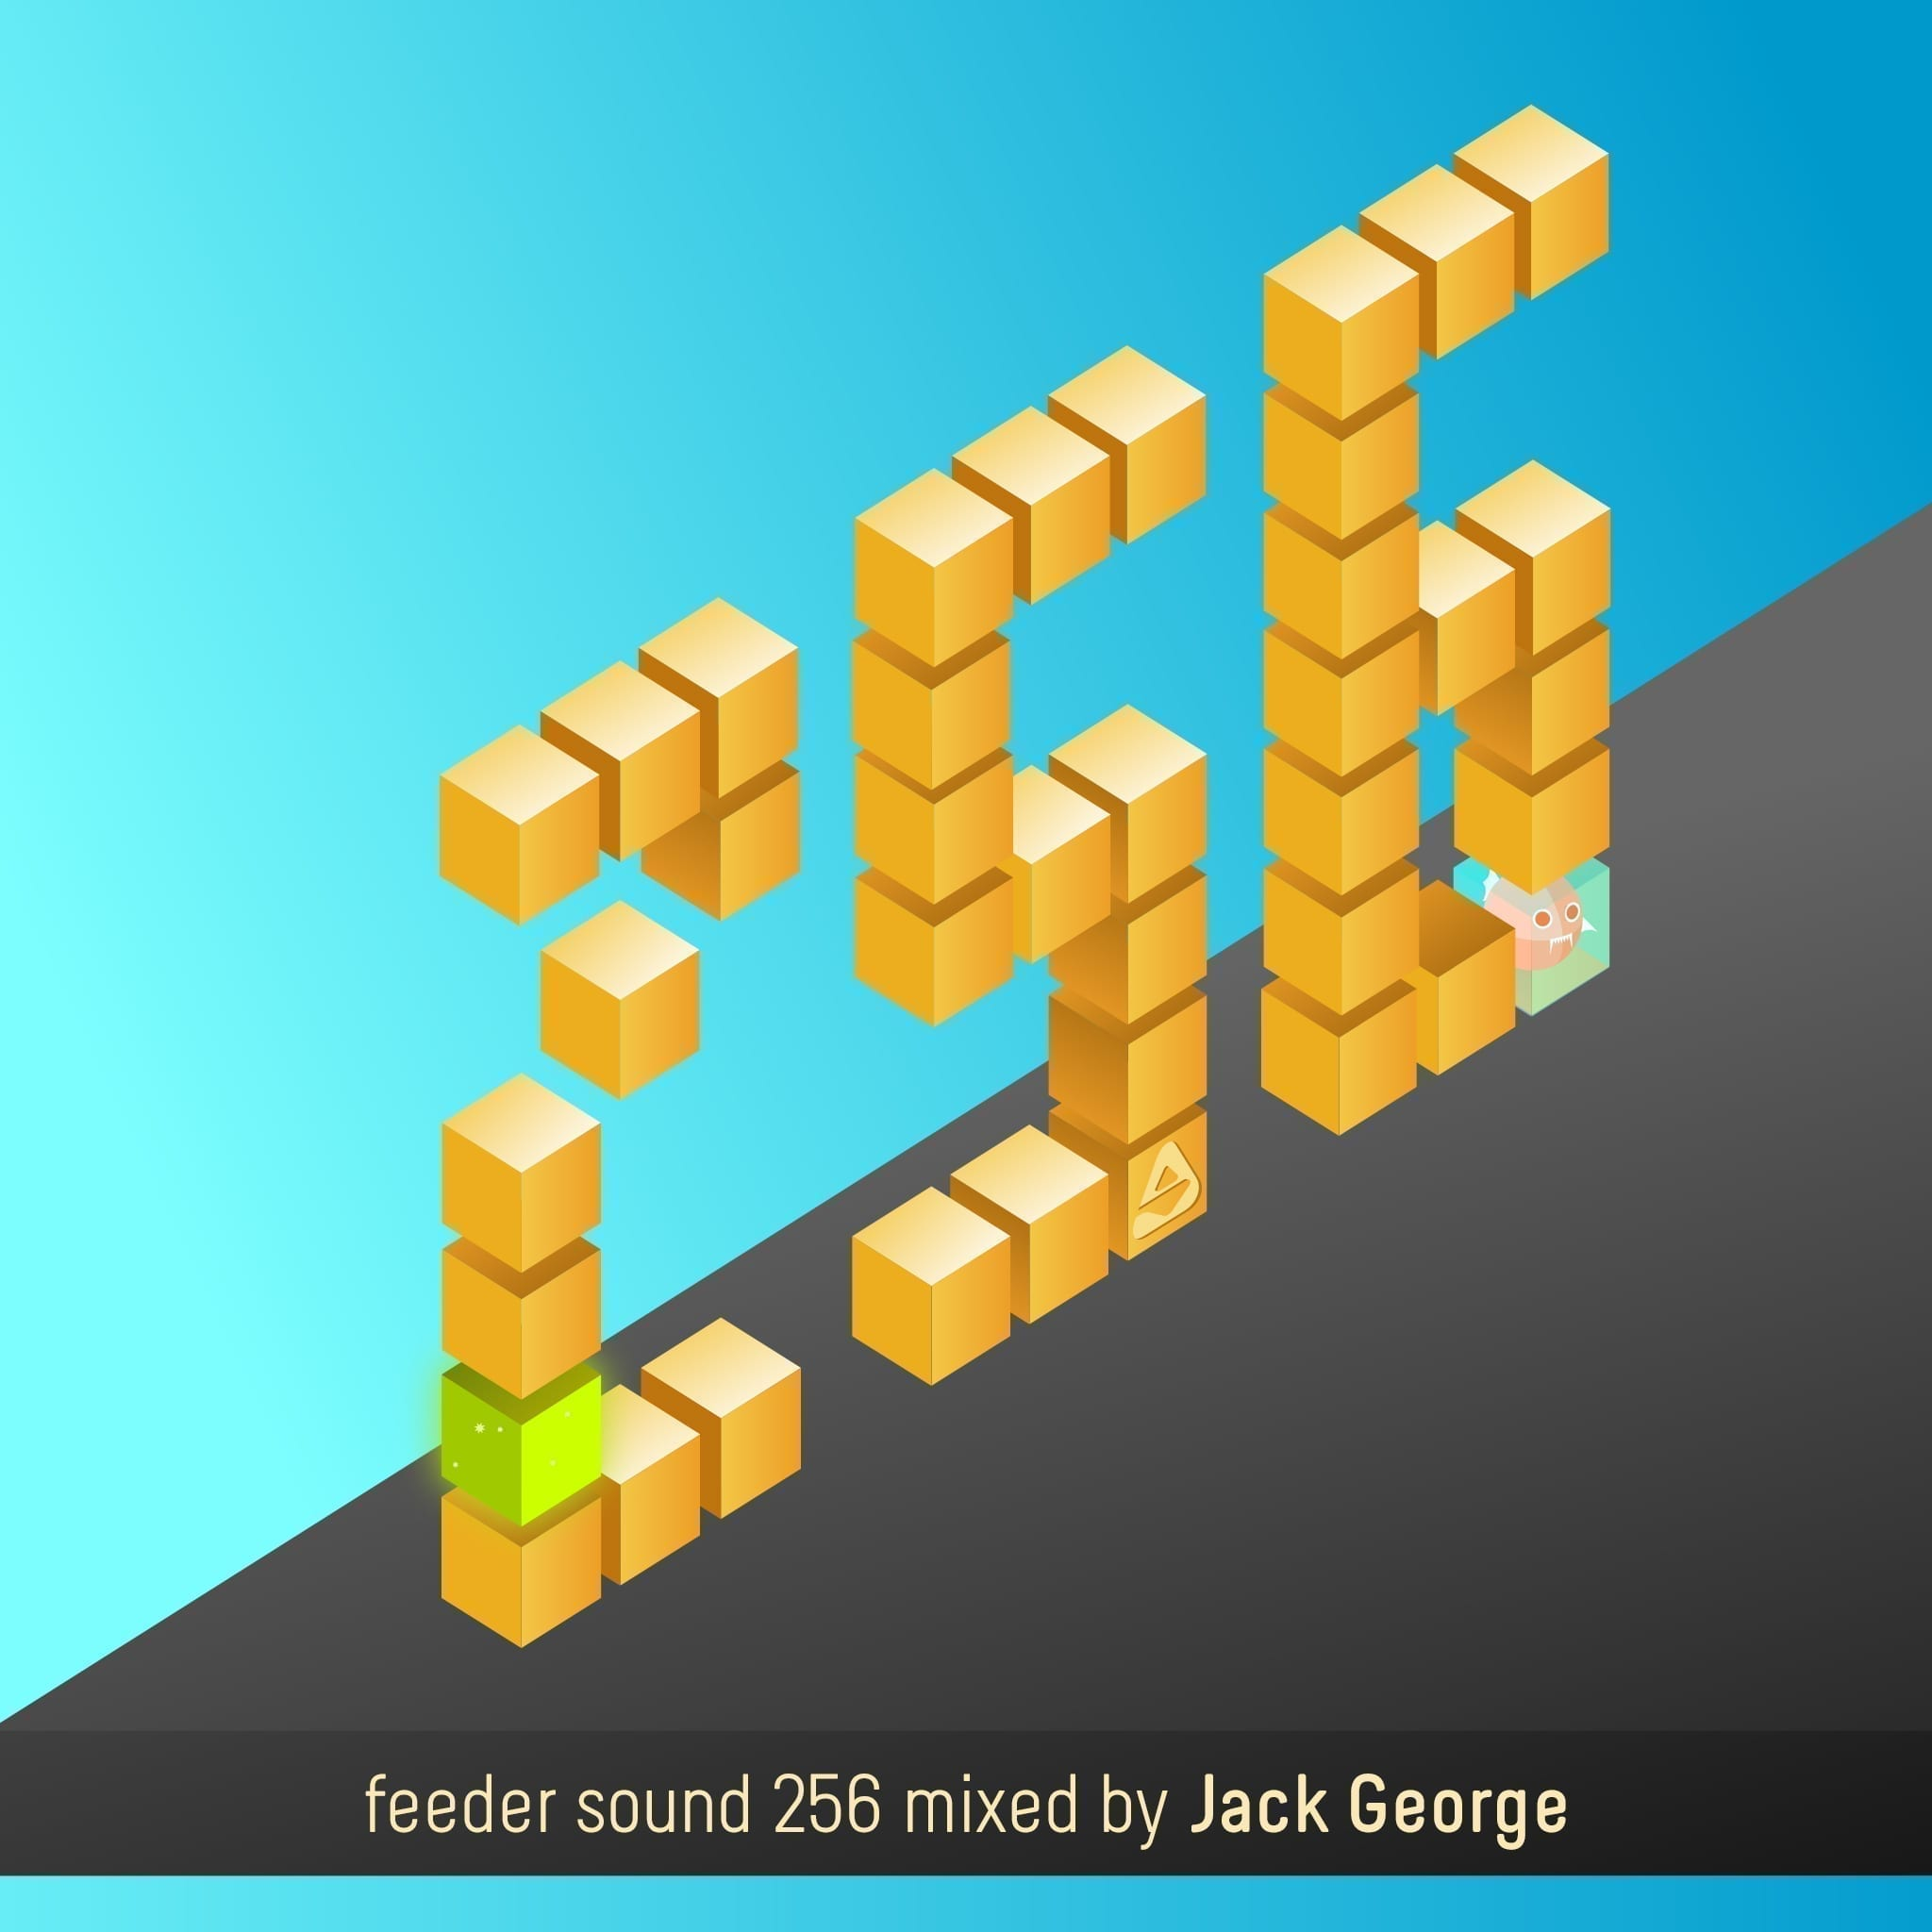 feeder sound 256 mixed by Jack George 01